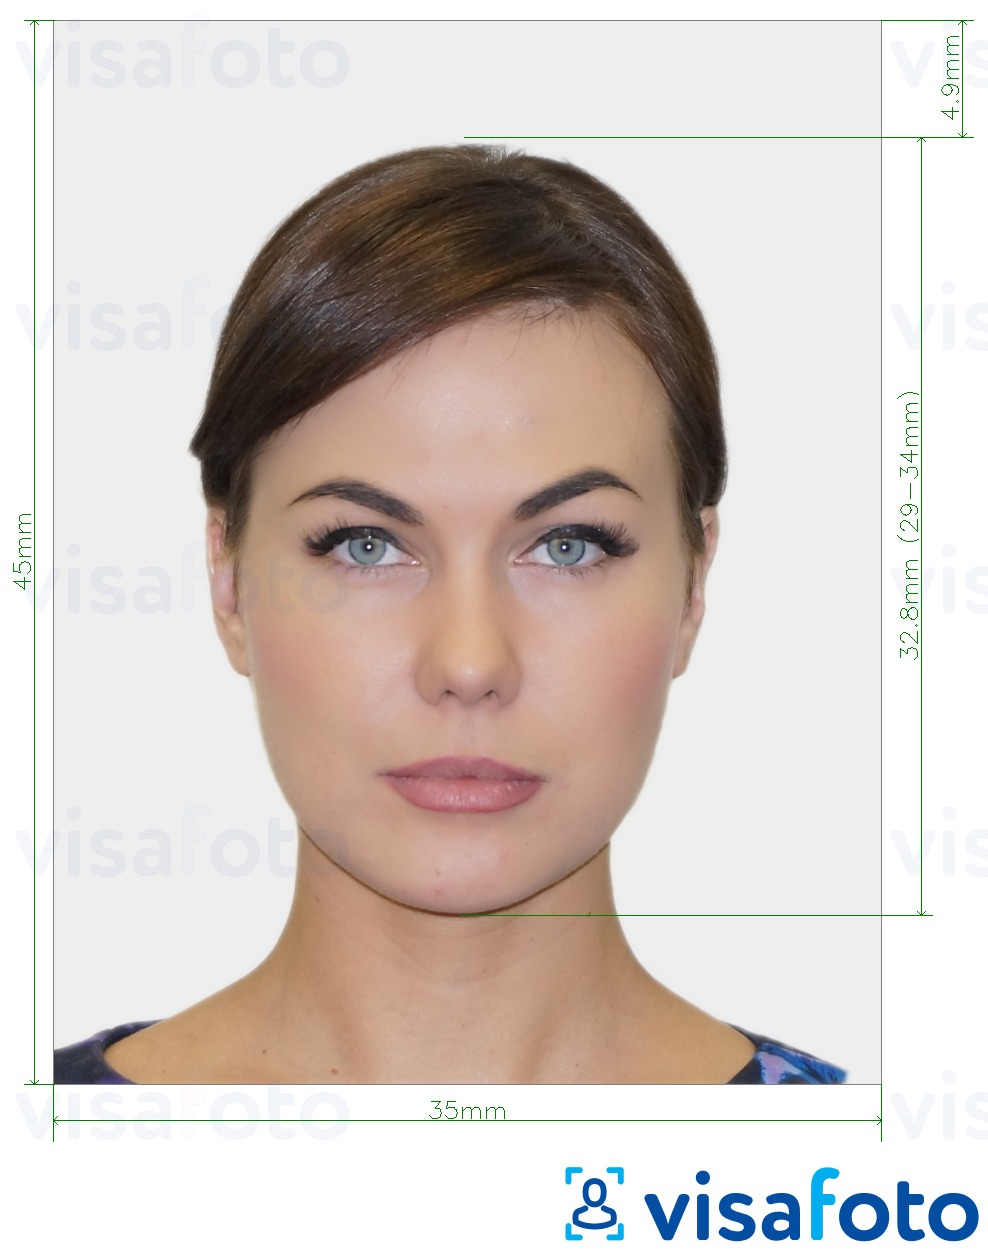 Example of photo for UK Passport offline 35x45 mm (3.5x4.5 cm) with exact size specification